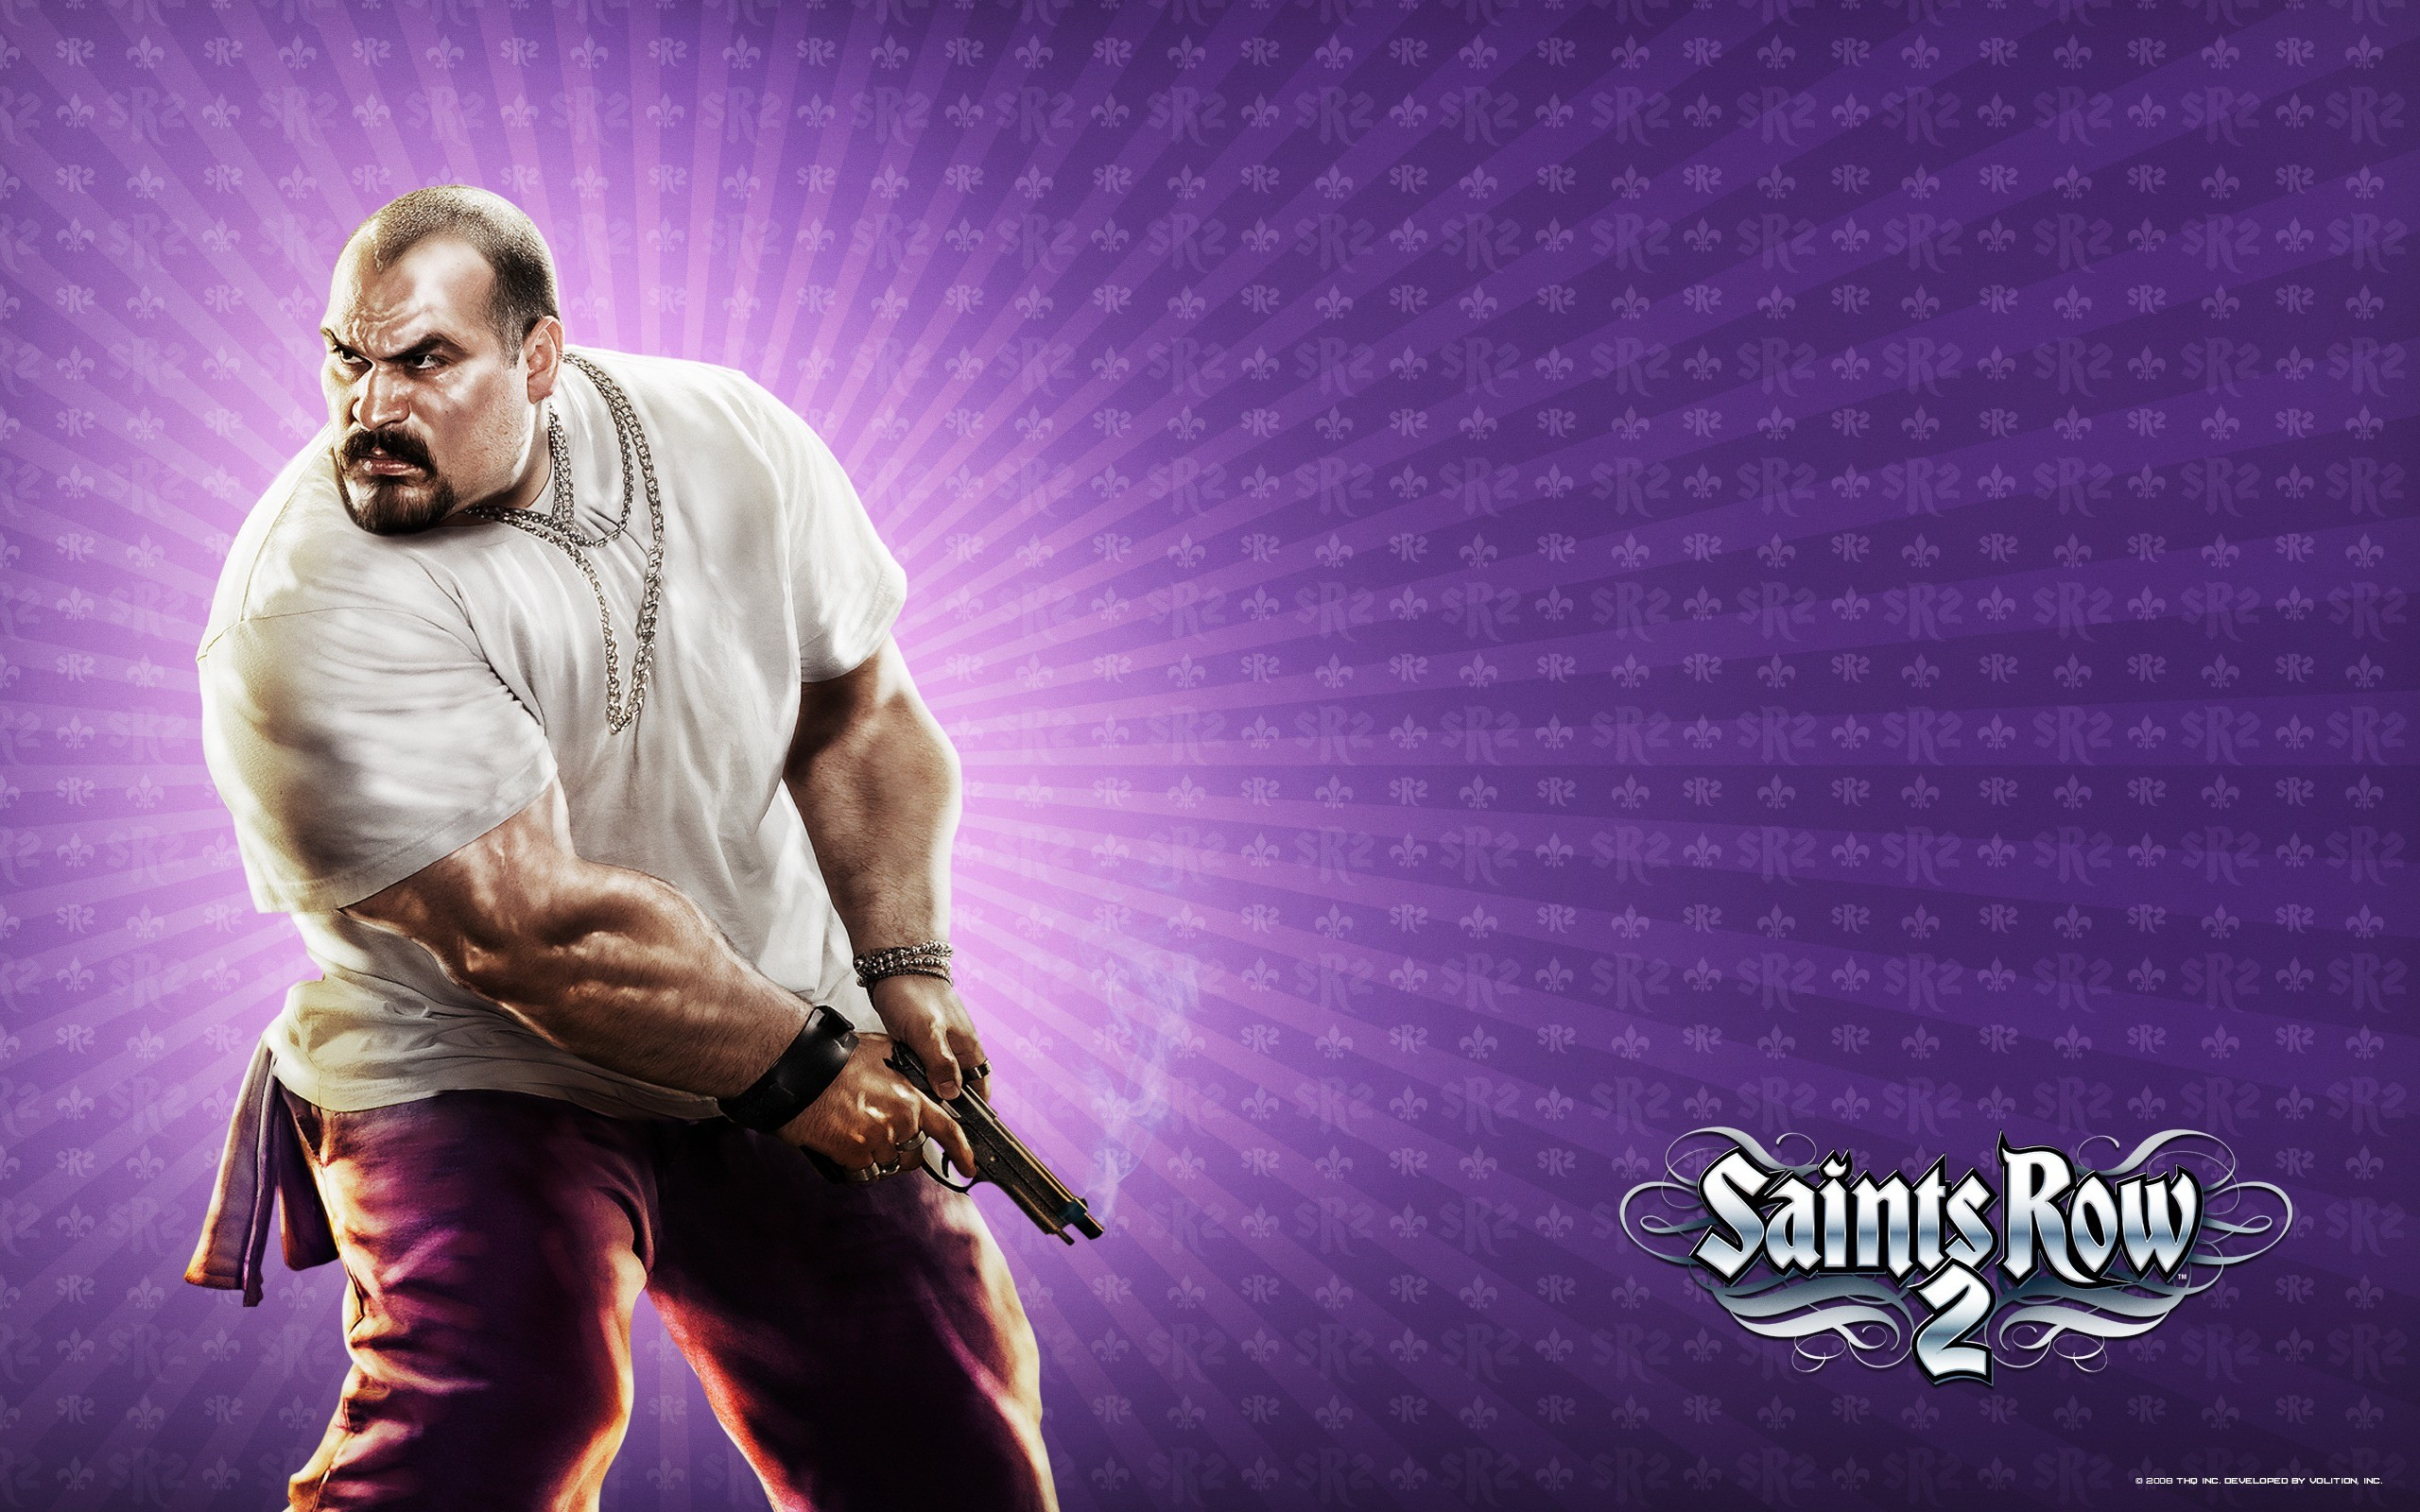 2560x1600 Saints Row 2 Wallpaper Saints Row Games Wallpapers